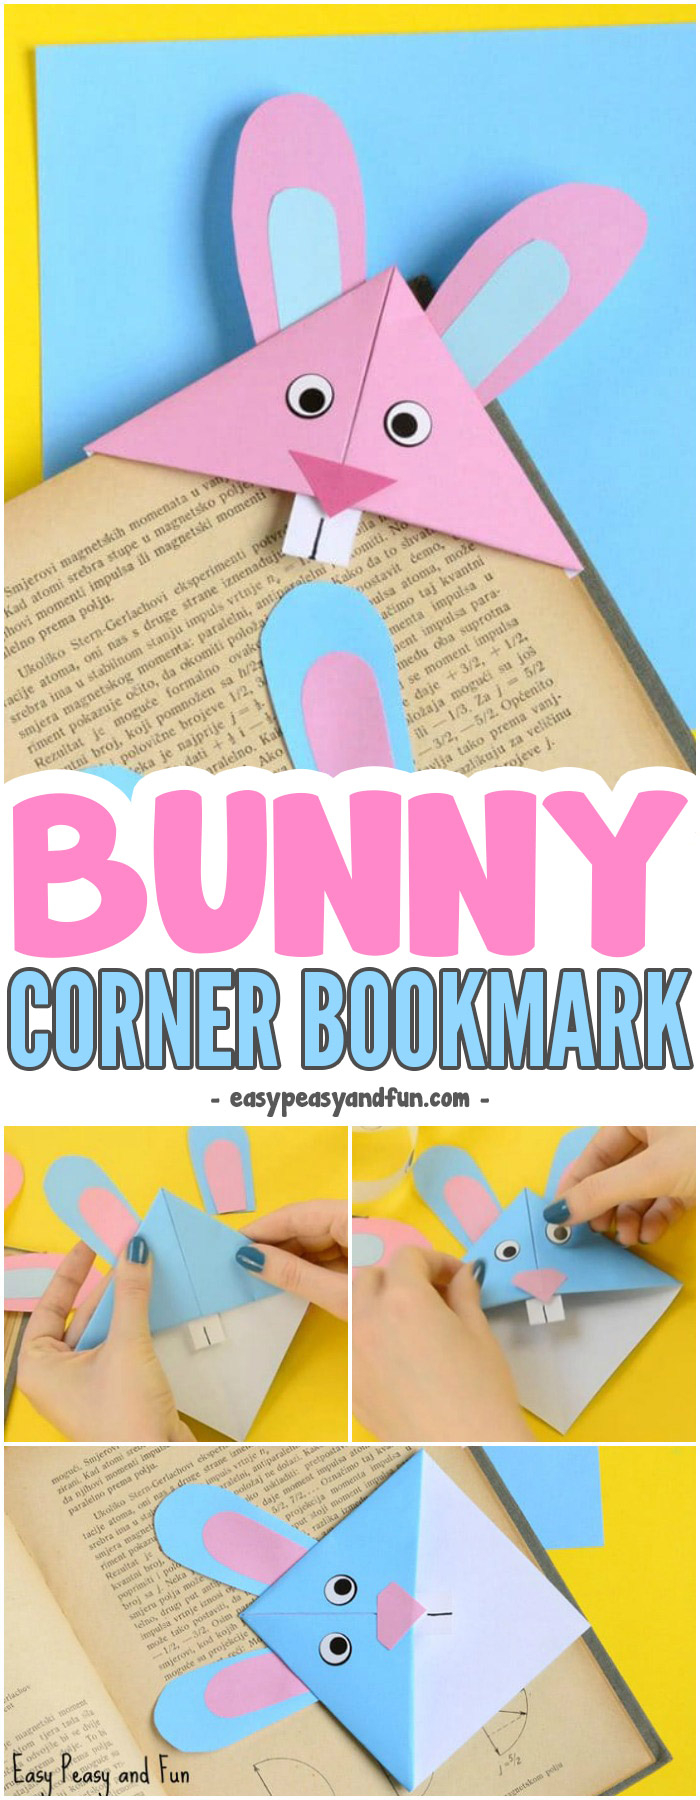 Origami Things For Kids Easter Bunny Corner Bookmark Diy Origami For Kids Easy Peasy And Fun